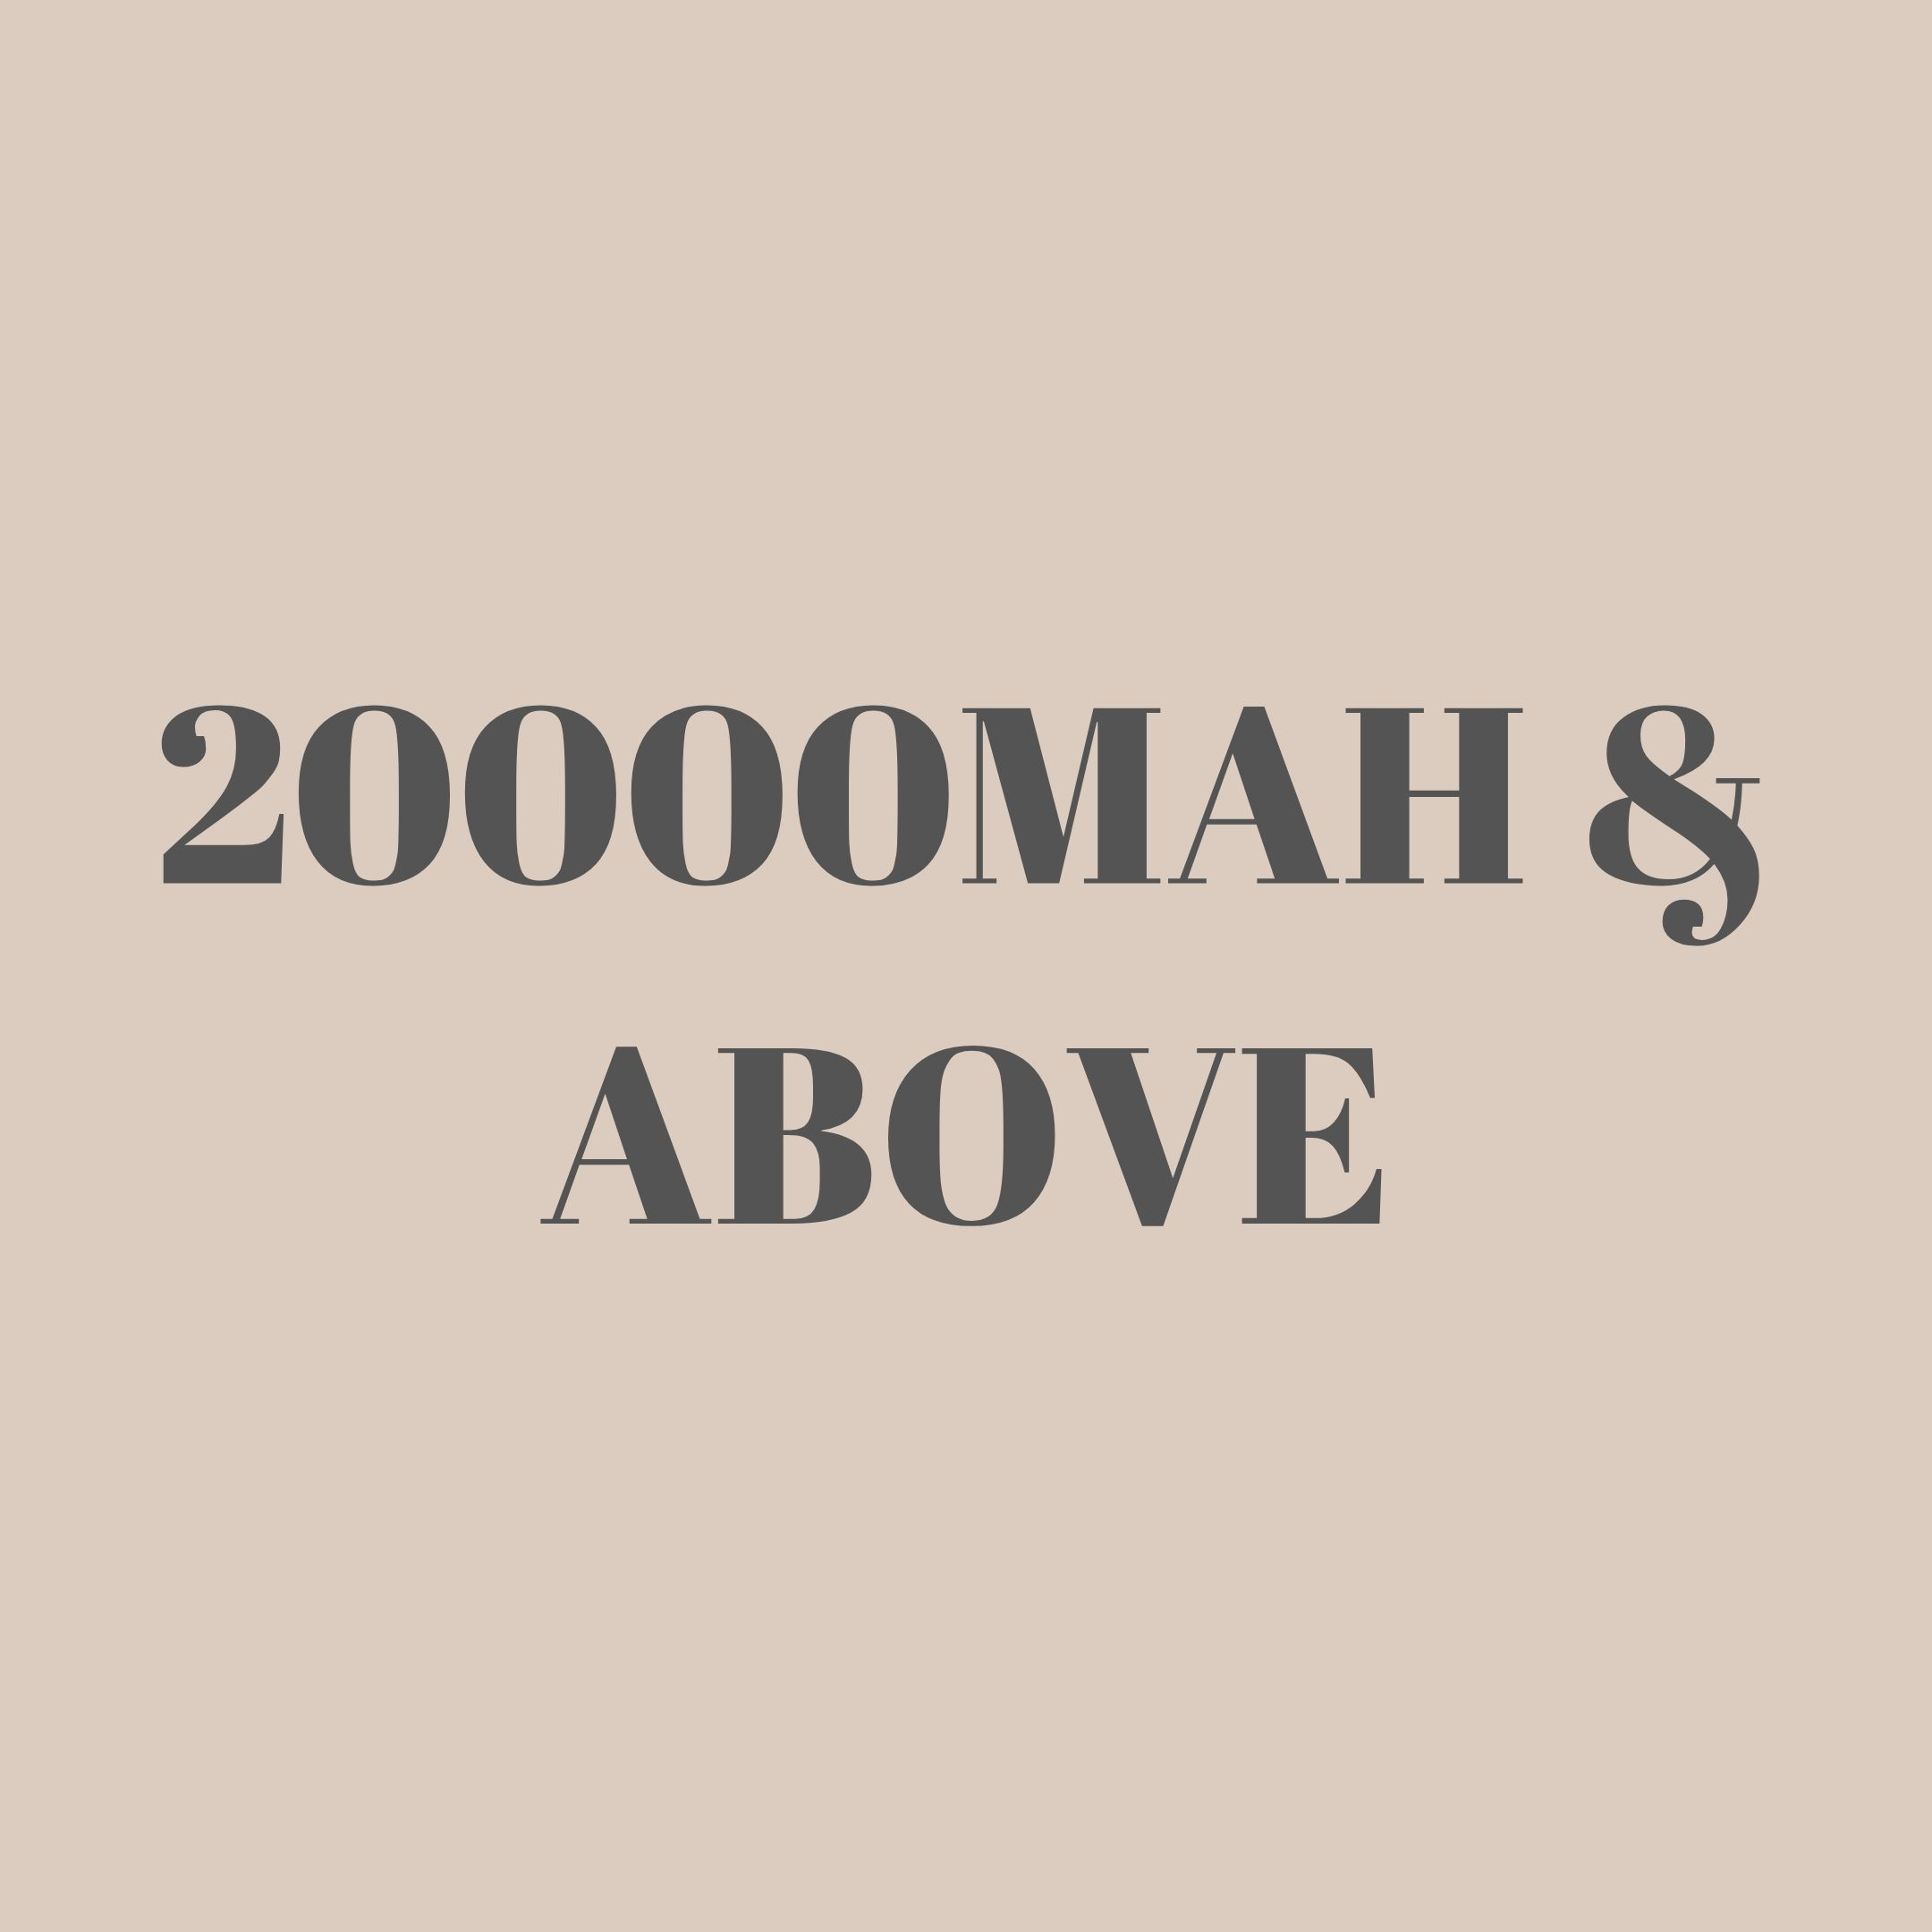 Powerbank 20000mAh & above